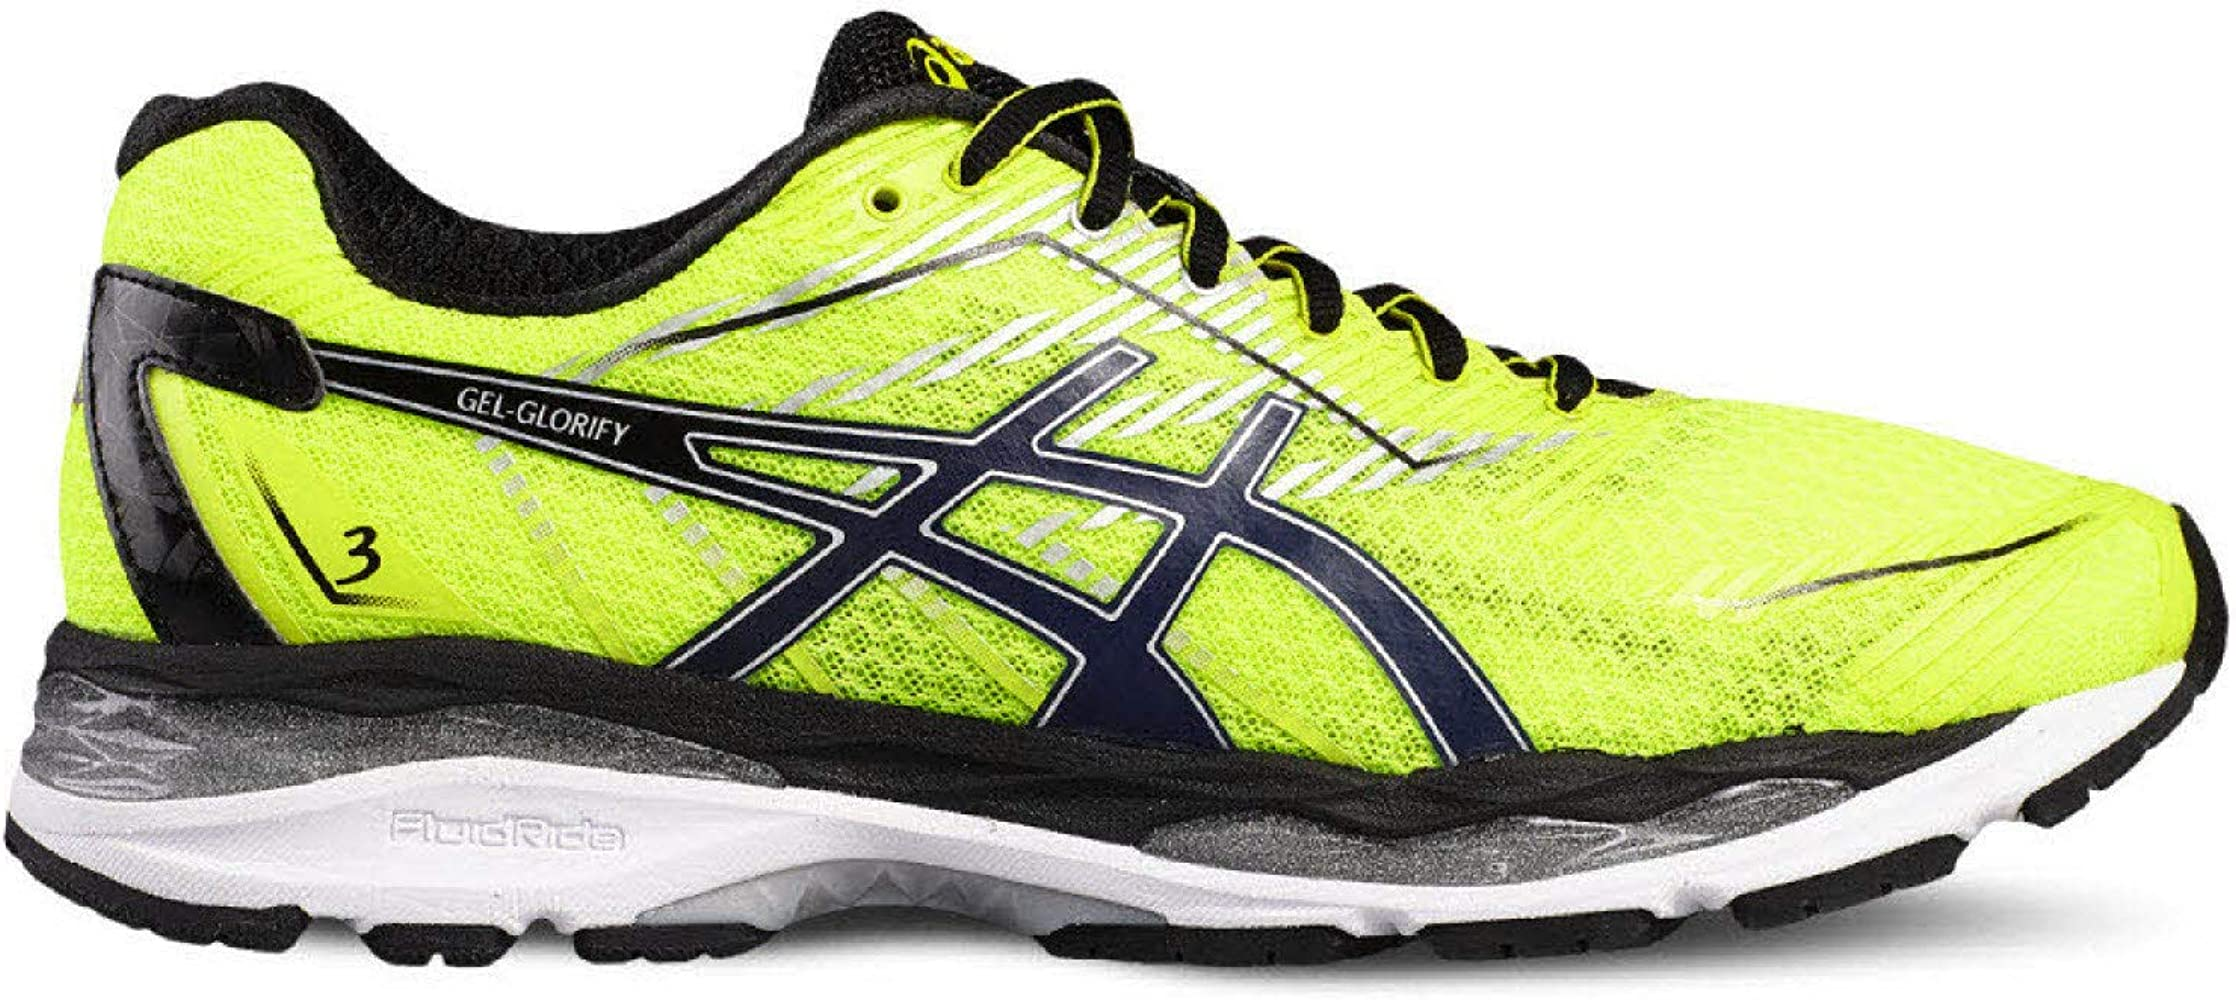 Asics Gel Glorify 3 yellow uomo